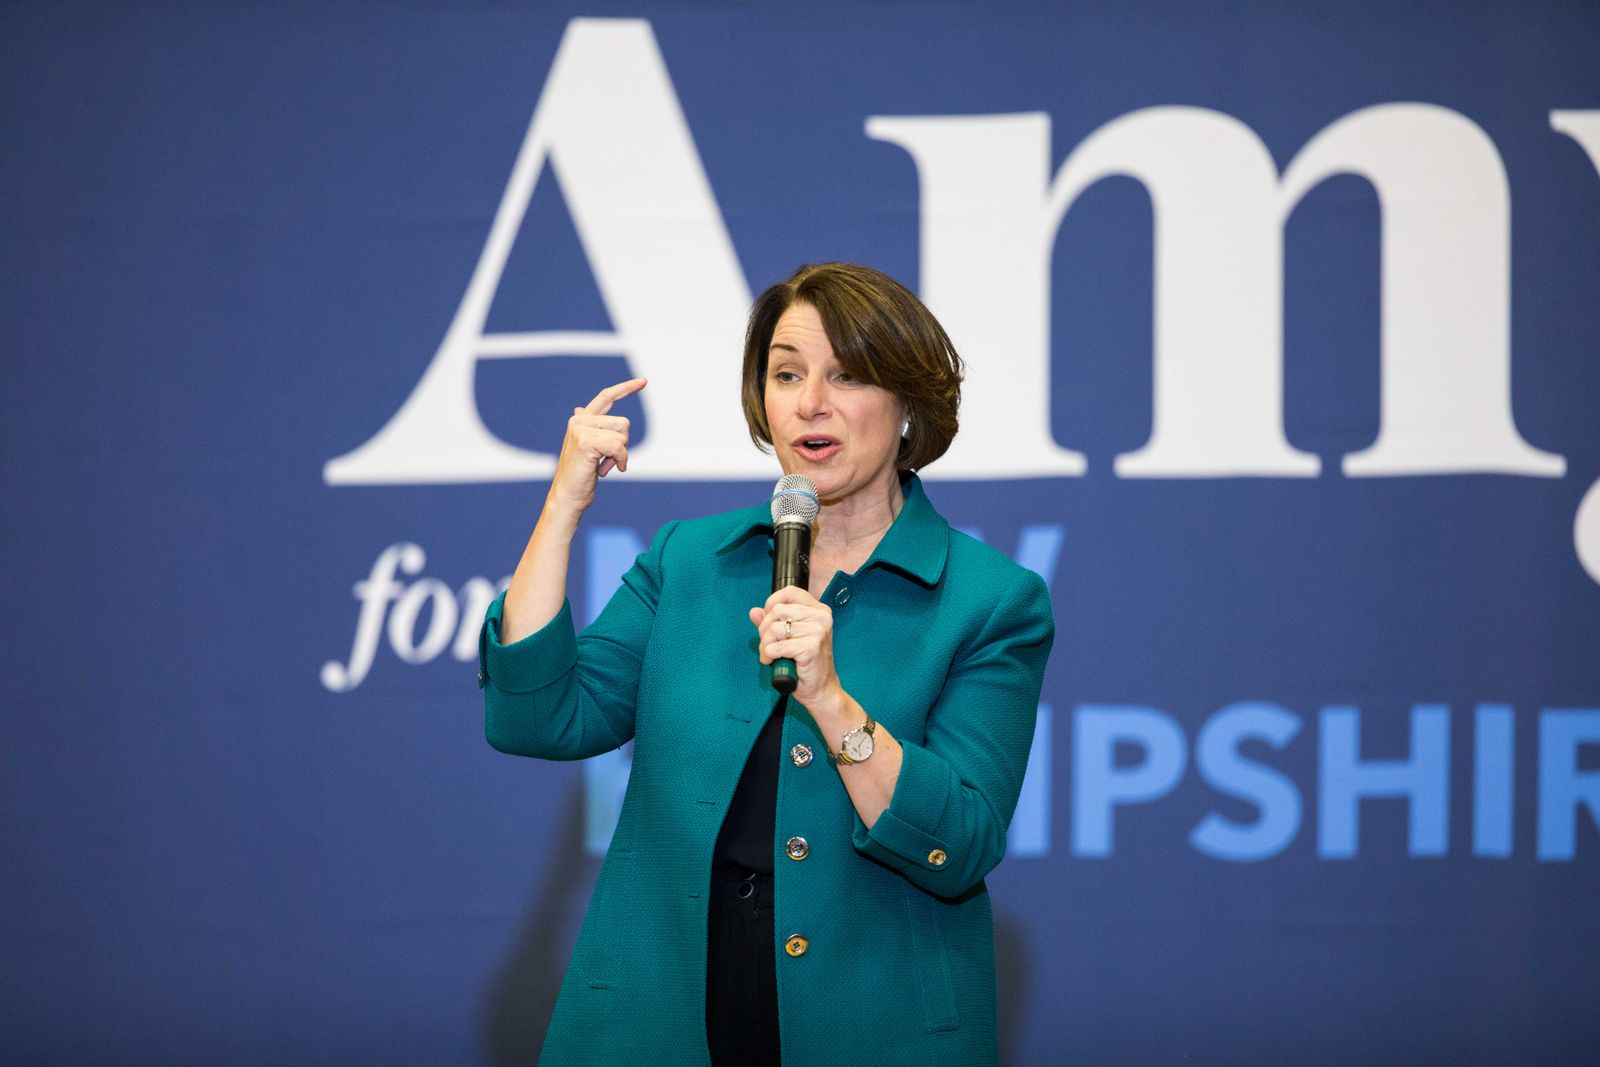 Amy Klobuchar Campaigns Across New Hampshire Ahead Of Primary